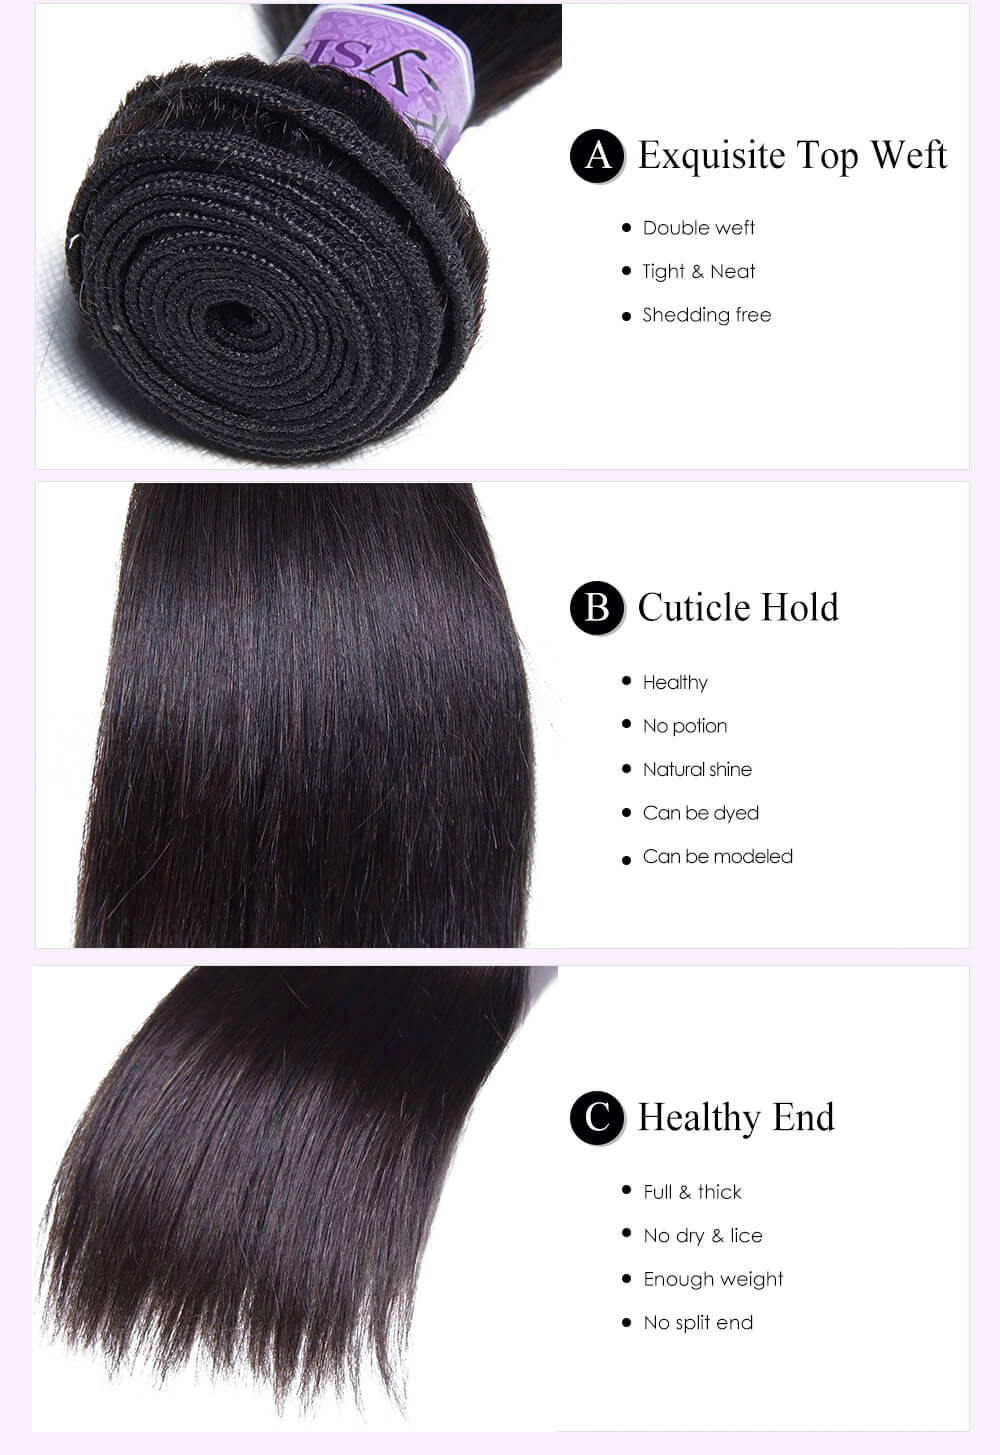 Unice kysiss Peruvian straight hair 3 bundles hair